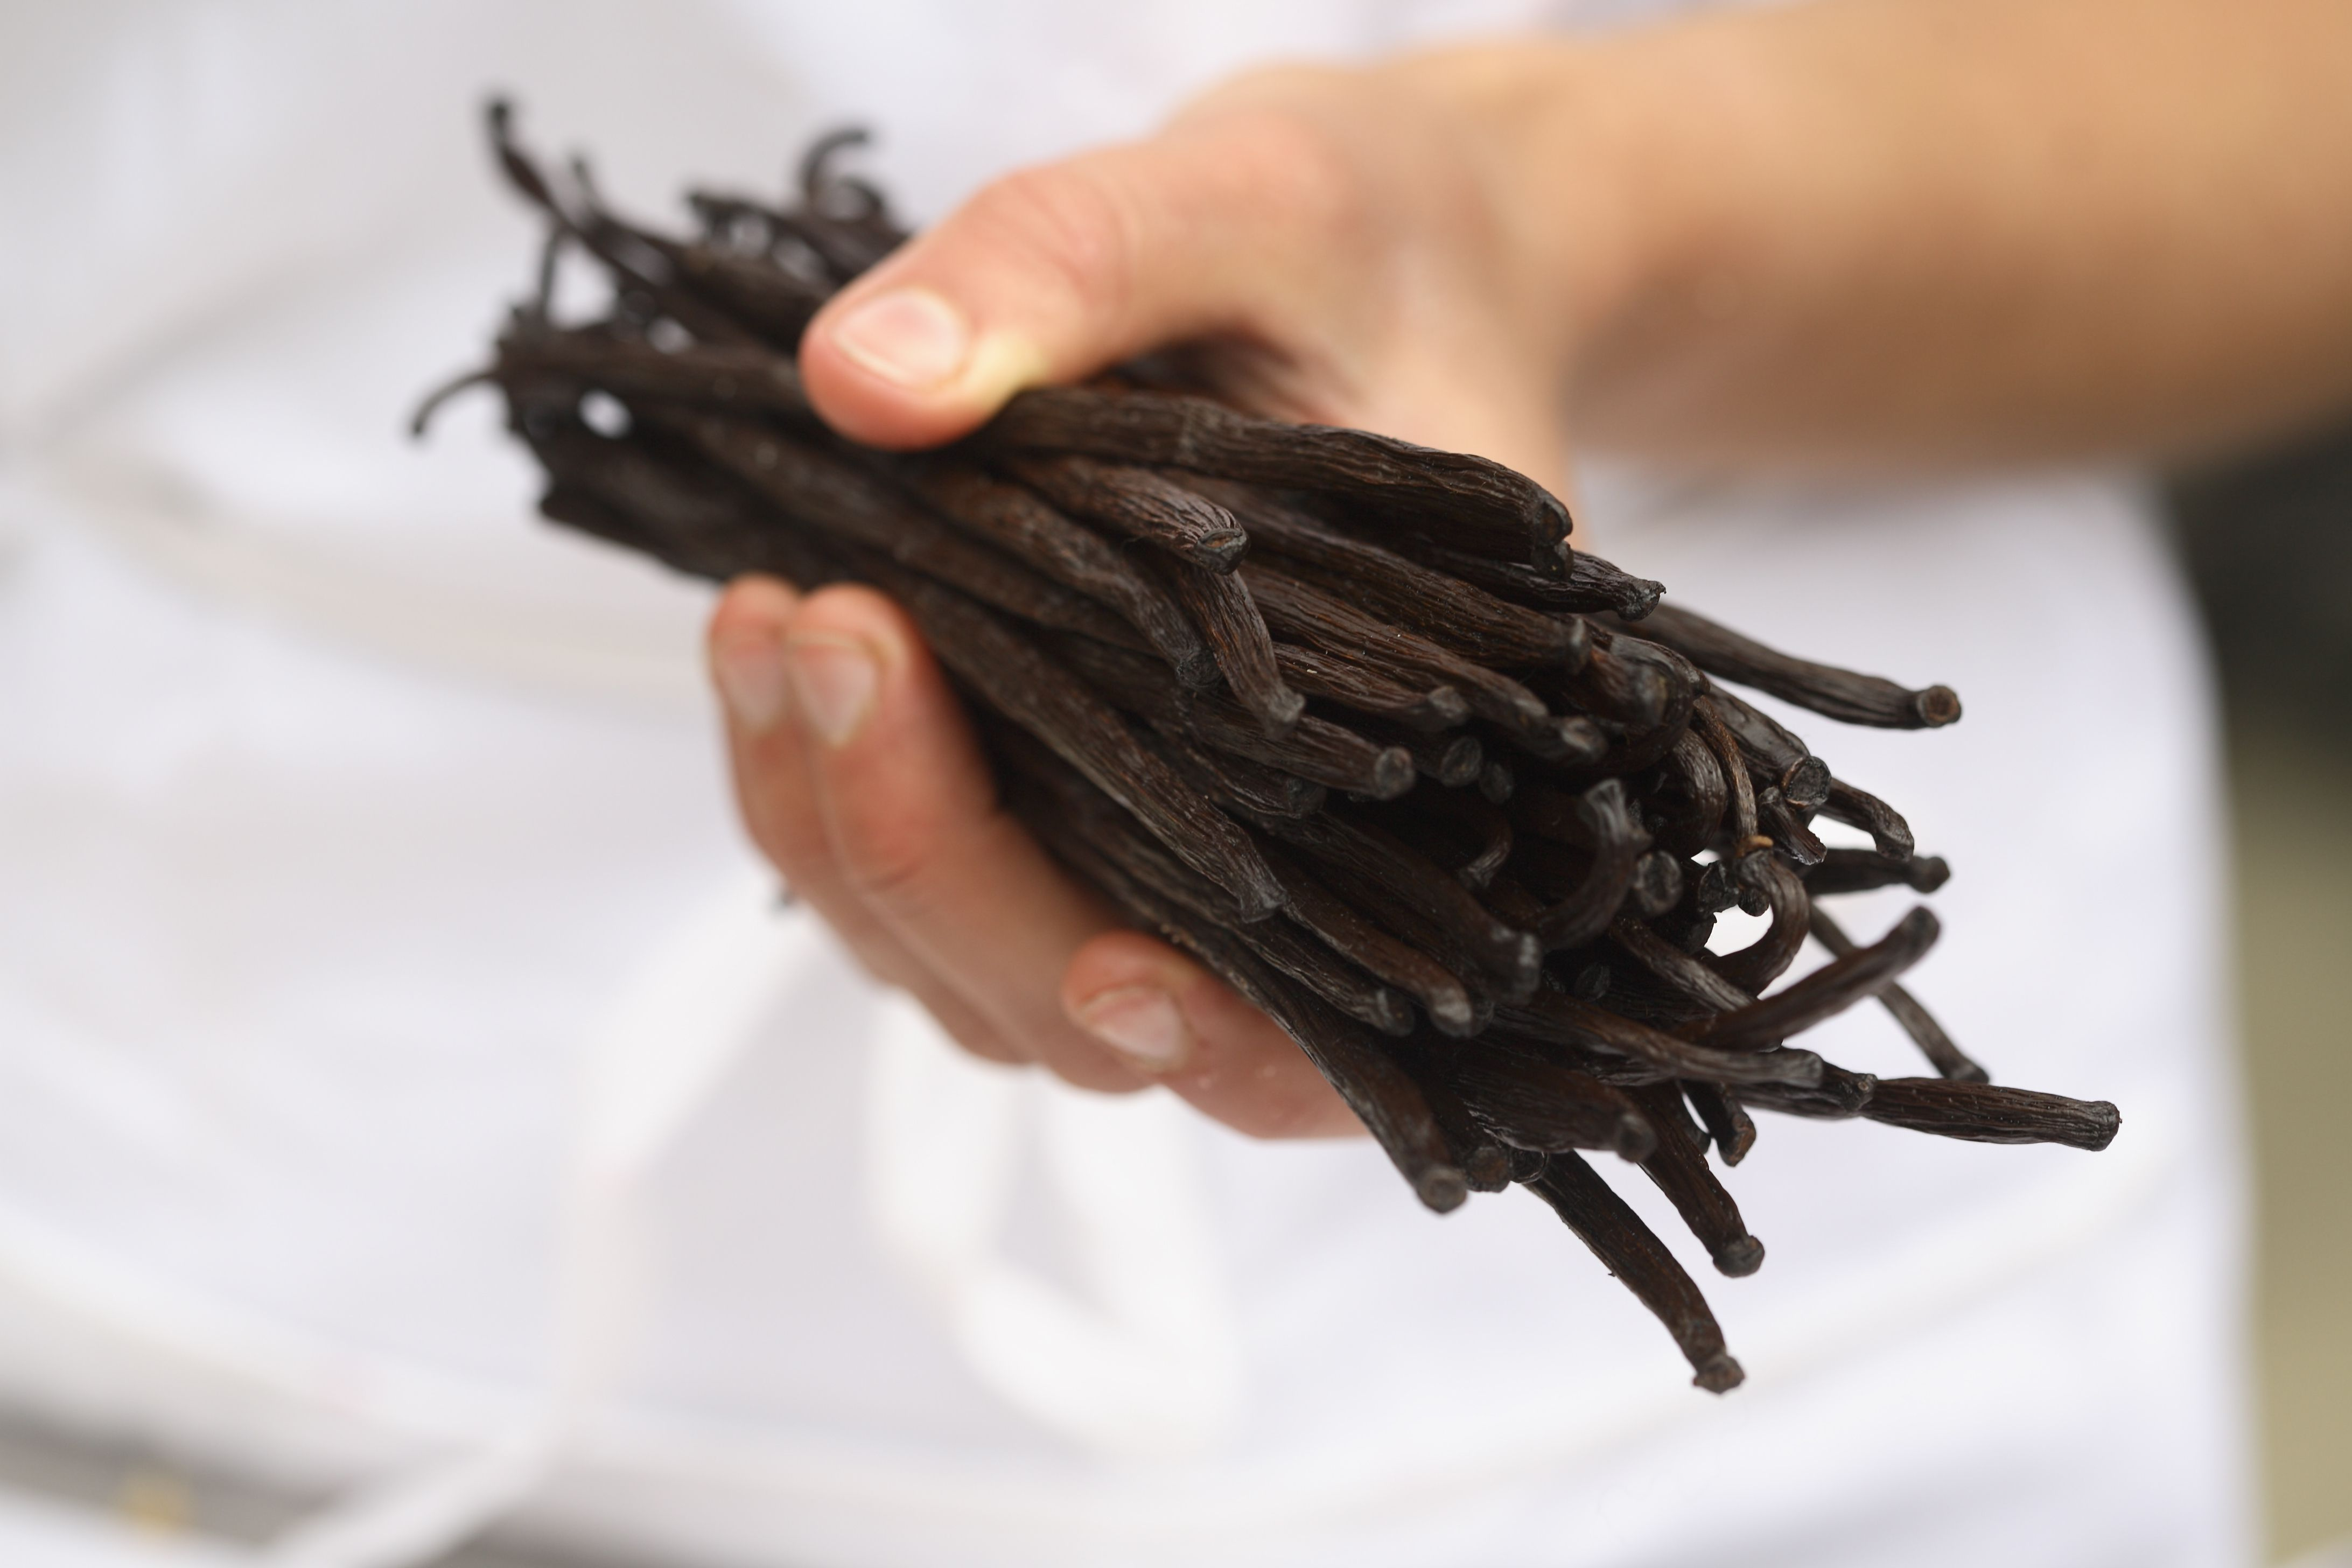 how to make vanilla extract from beans